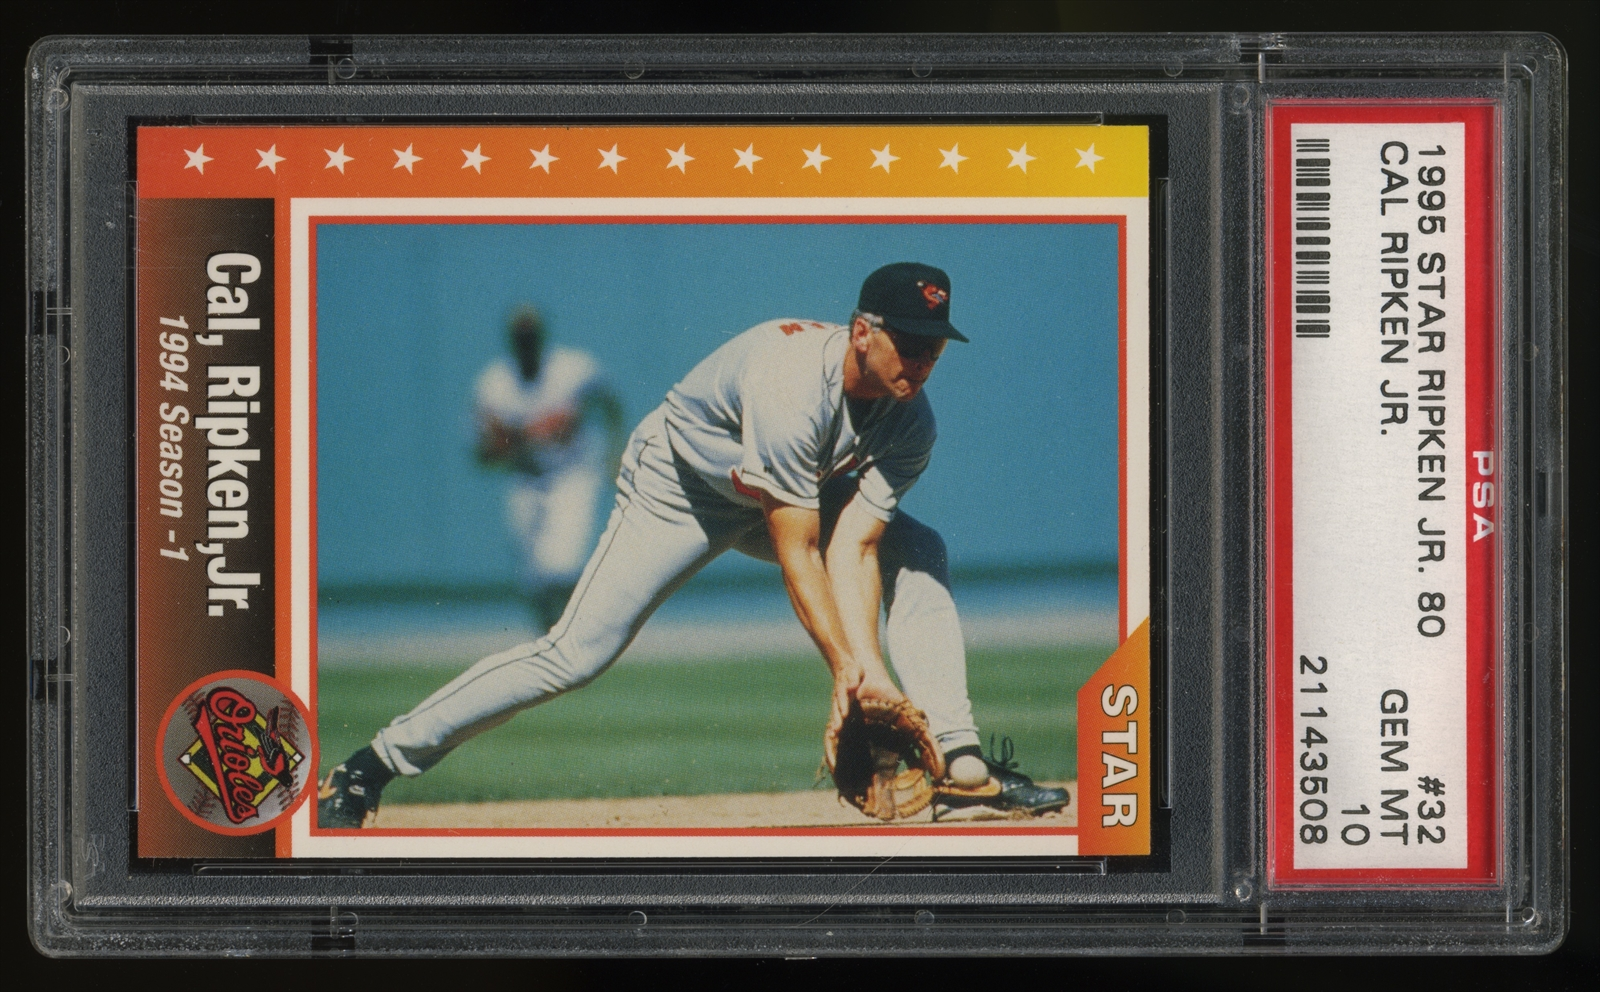 Baseball - 1995 Star Cal Ripken Jr  80: Edwin's 1995 Star